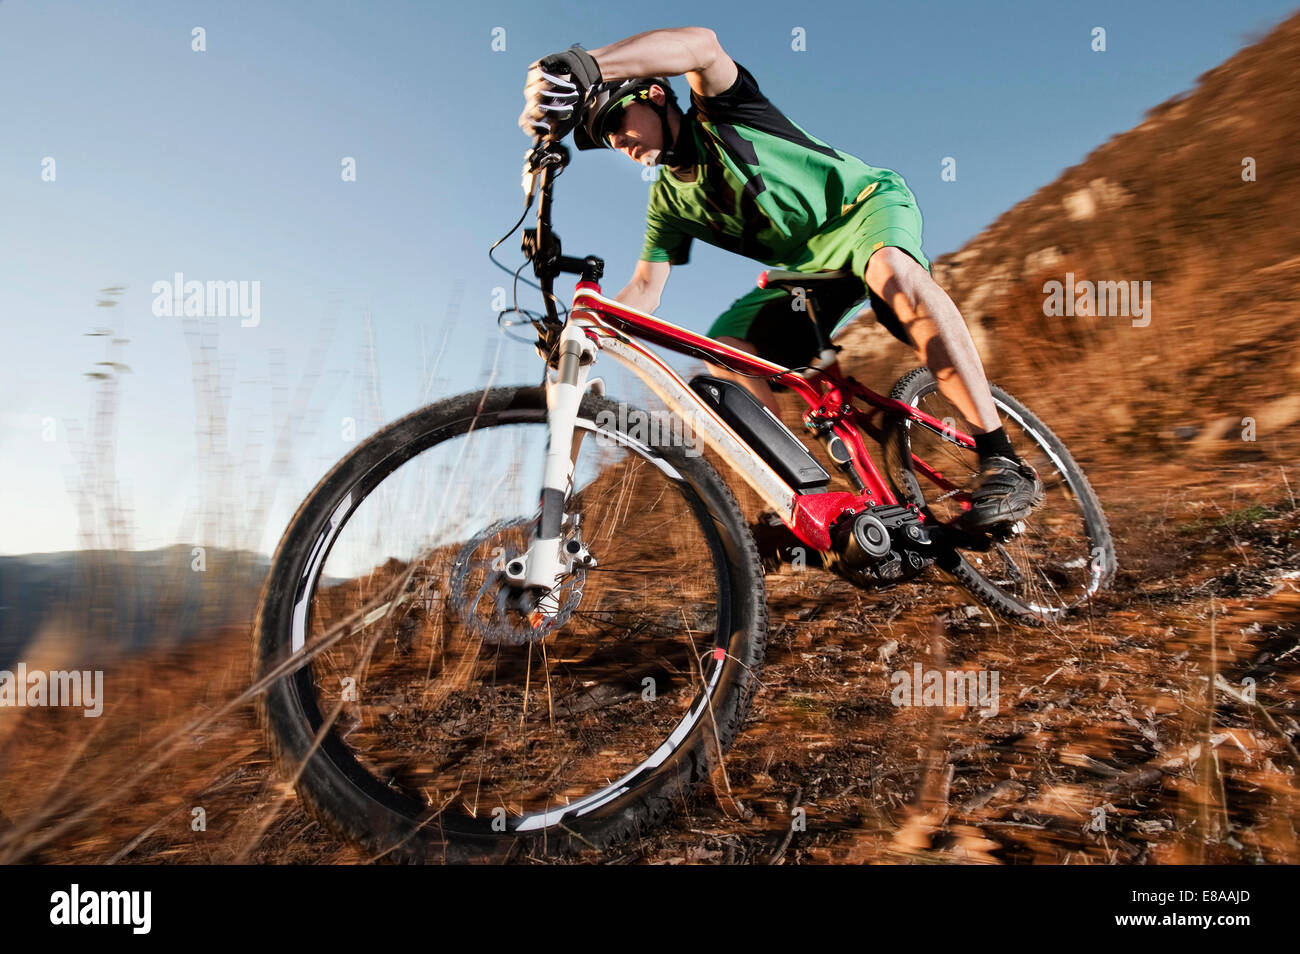 Man biking on electric mountain bike, Trentino, Italy - Stock Image